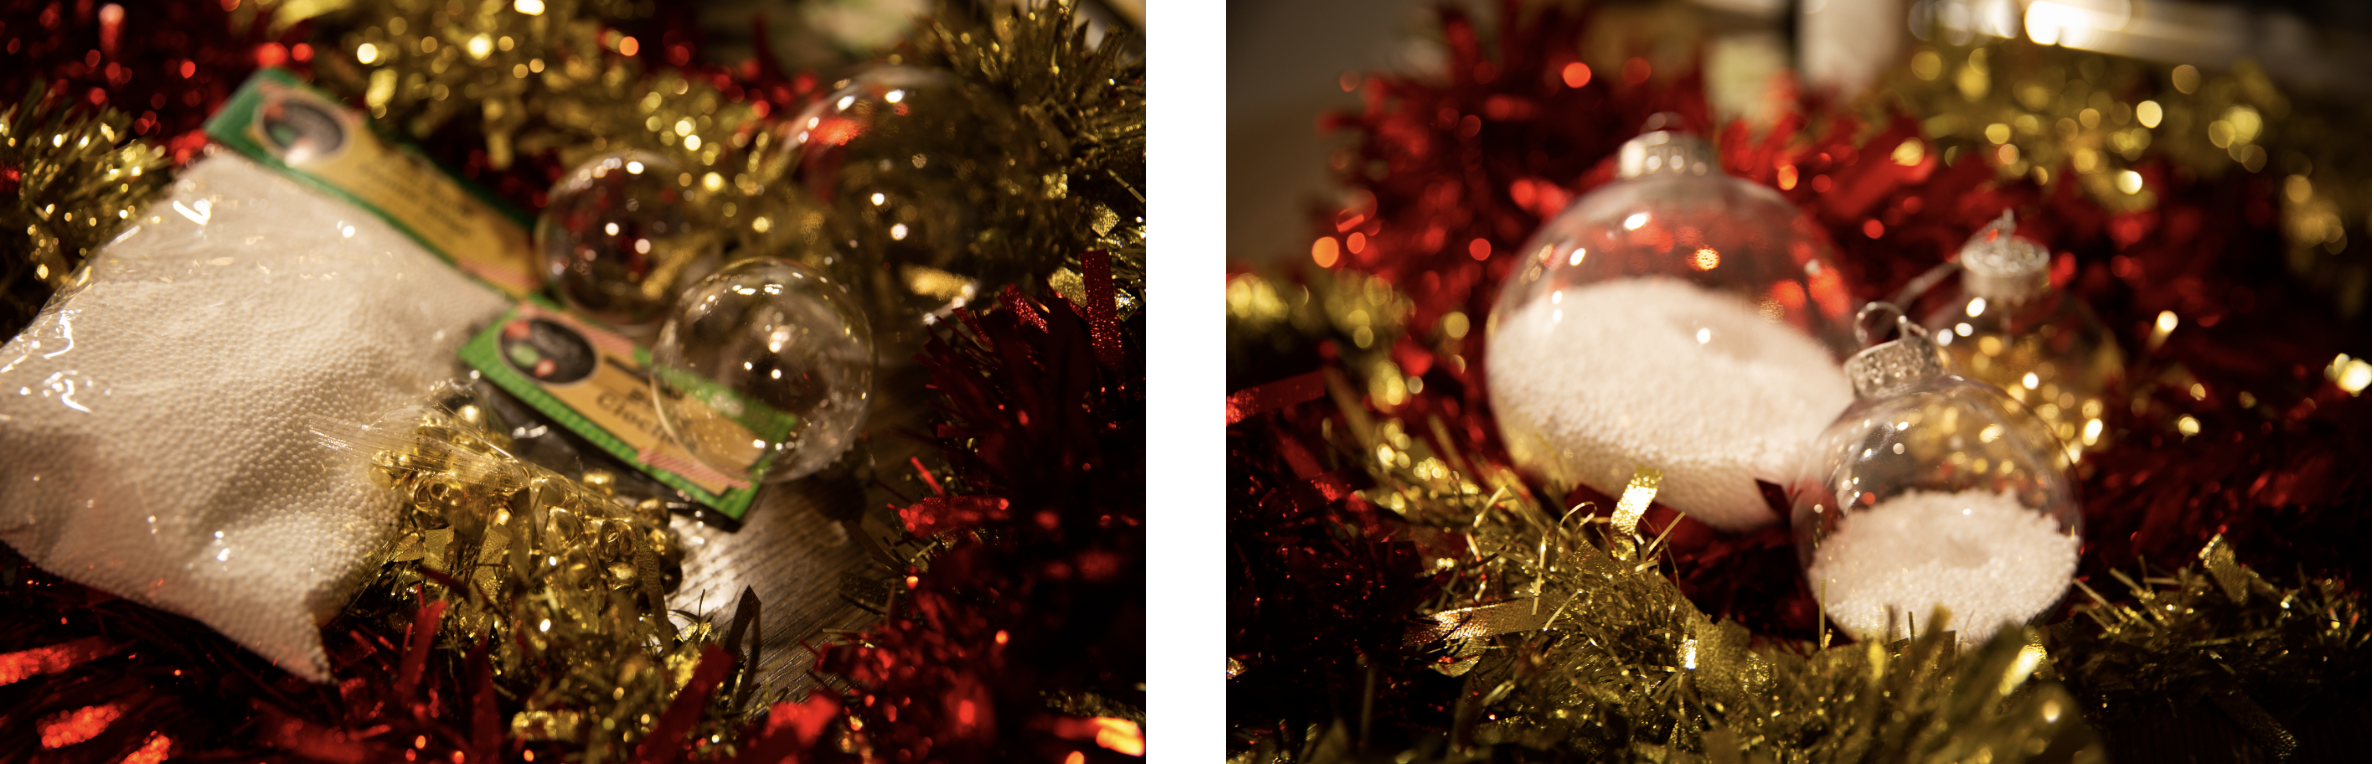 Photo (left) shows DIY ornament materials, while photo (right) shows finished DIY ornaments.